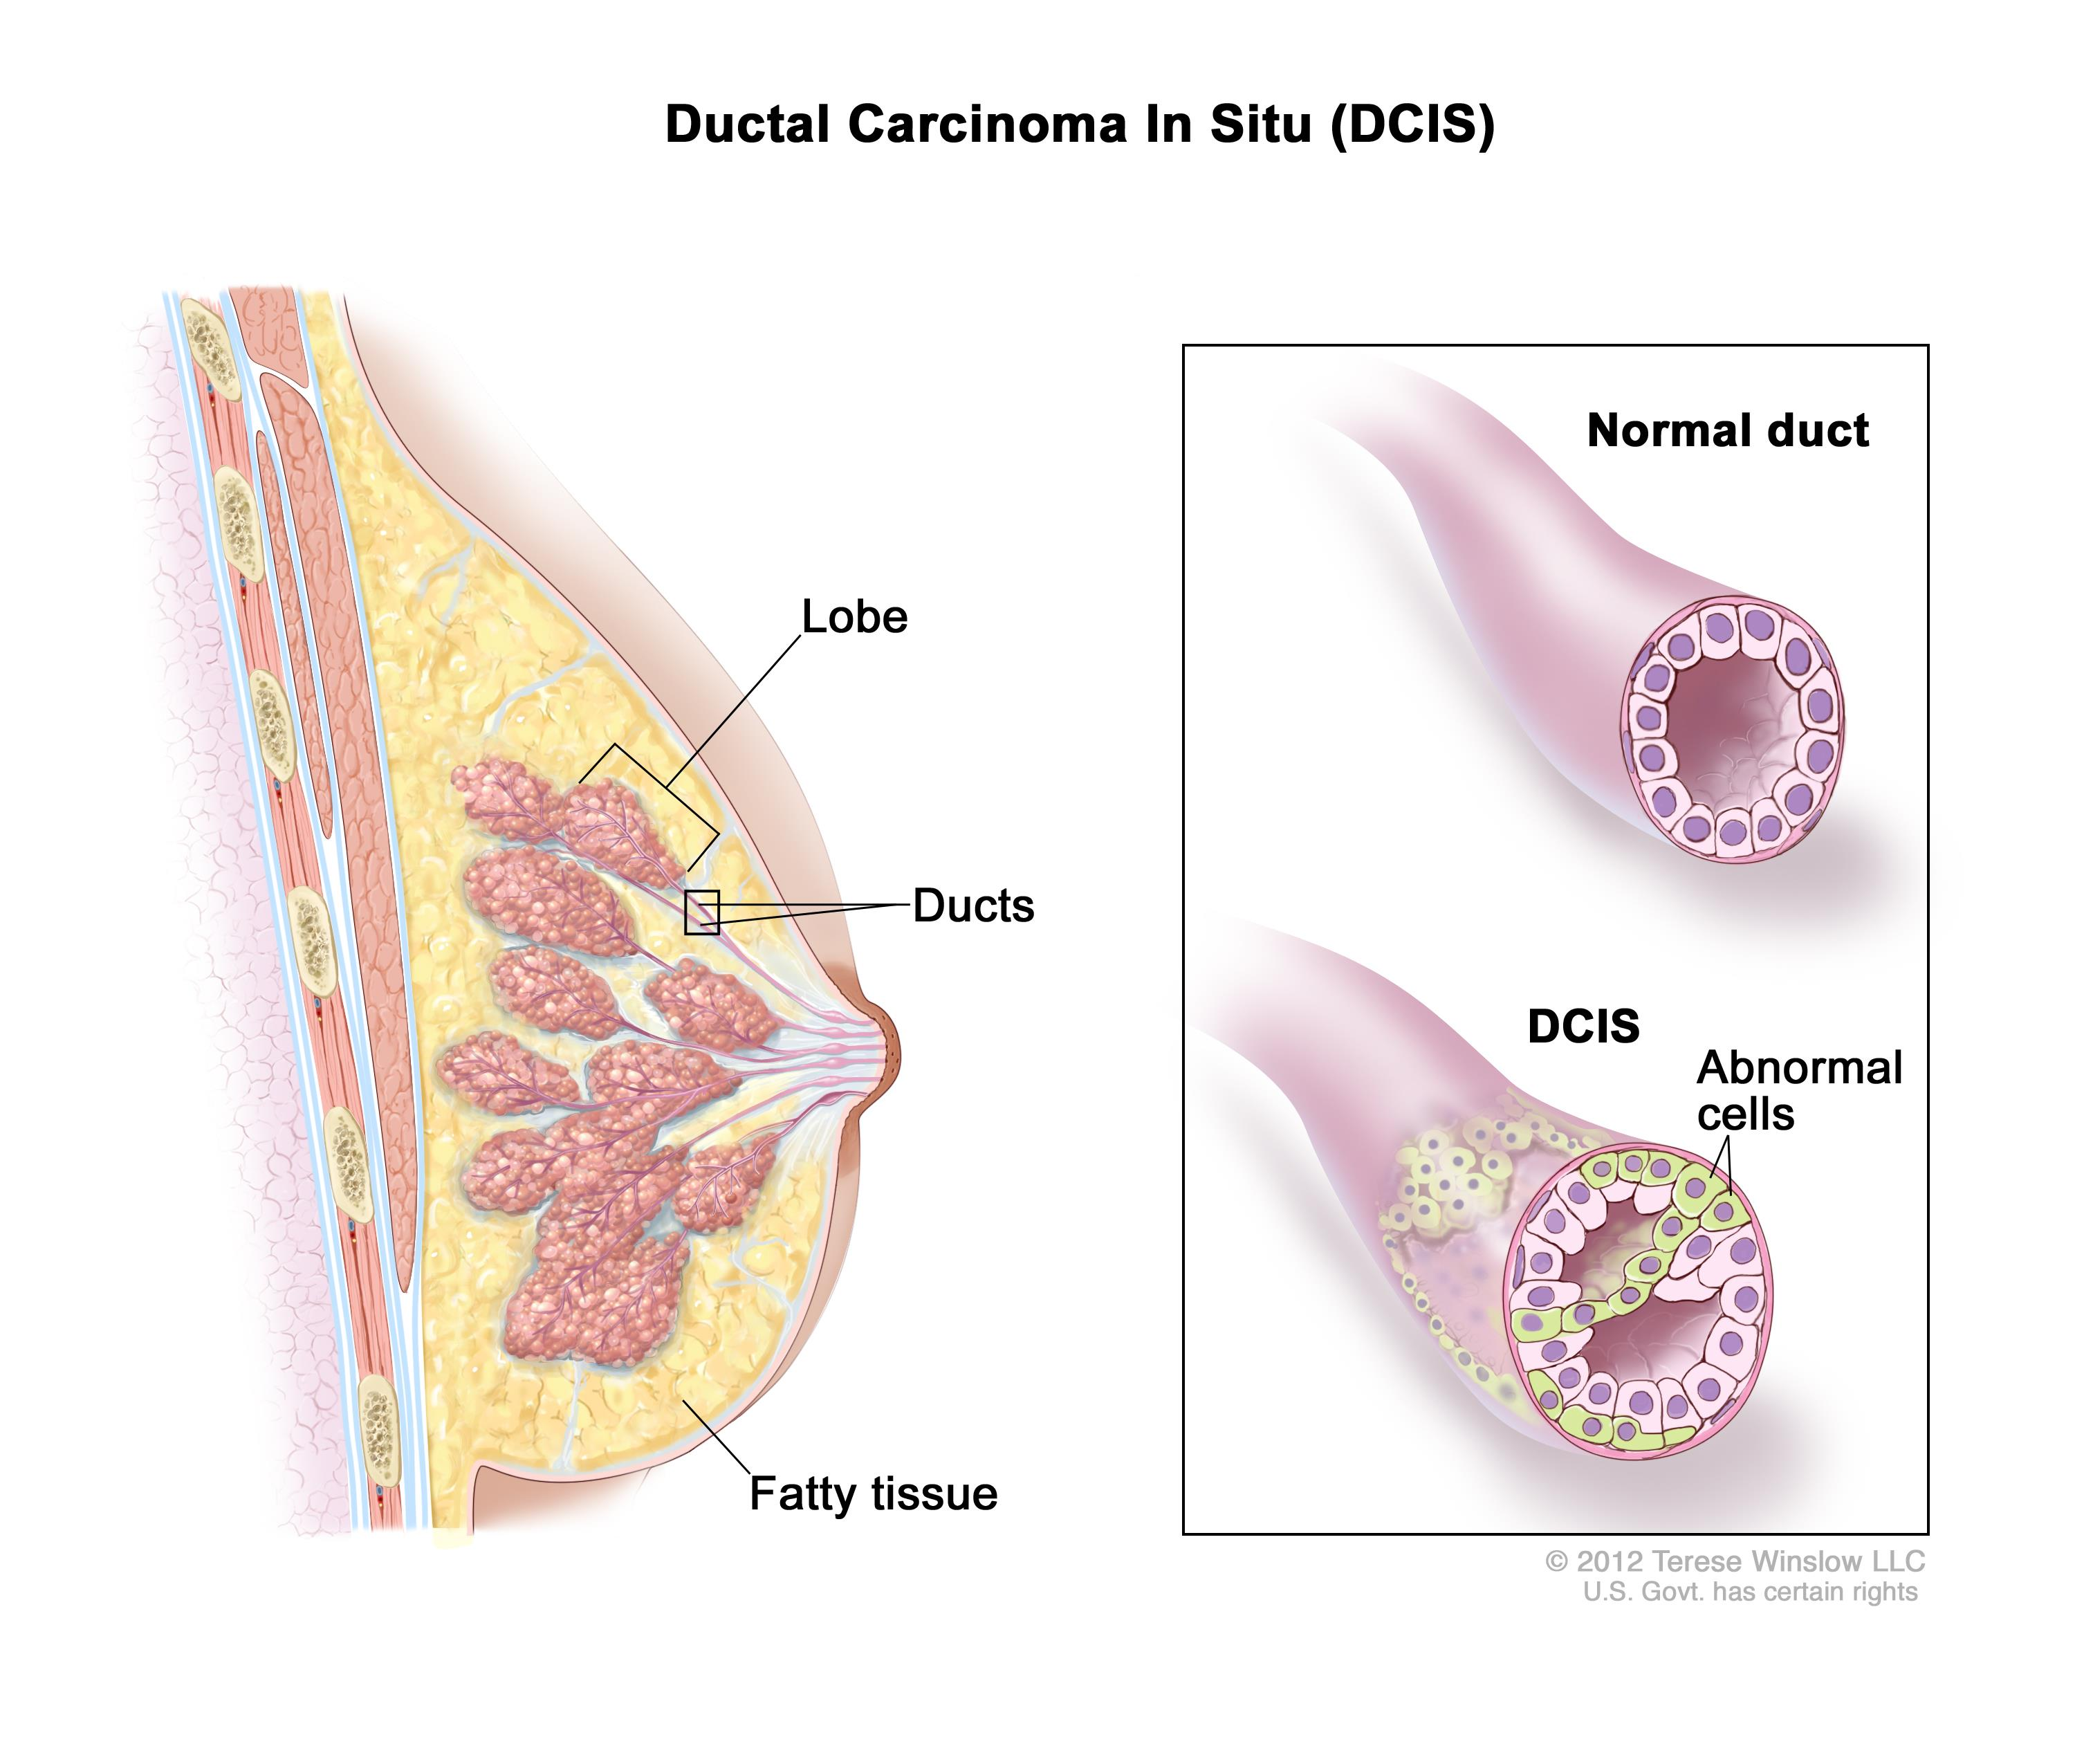 Ductal carcinoma in situ (DCIS); drawing shows  a lobe, ducts, and fatty tissue in a cross section of the breast. The inset shows a normal duct and a duct with abnormal cells.